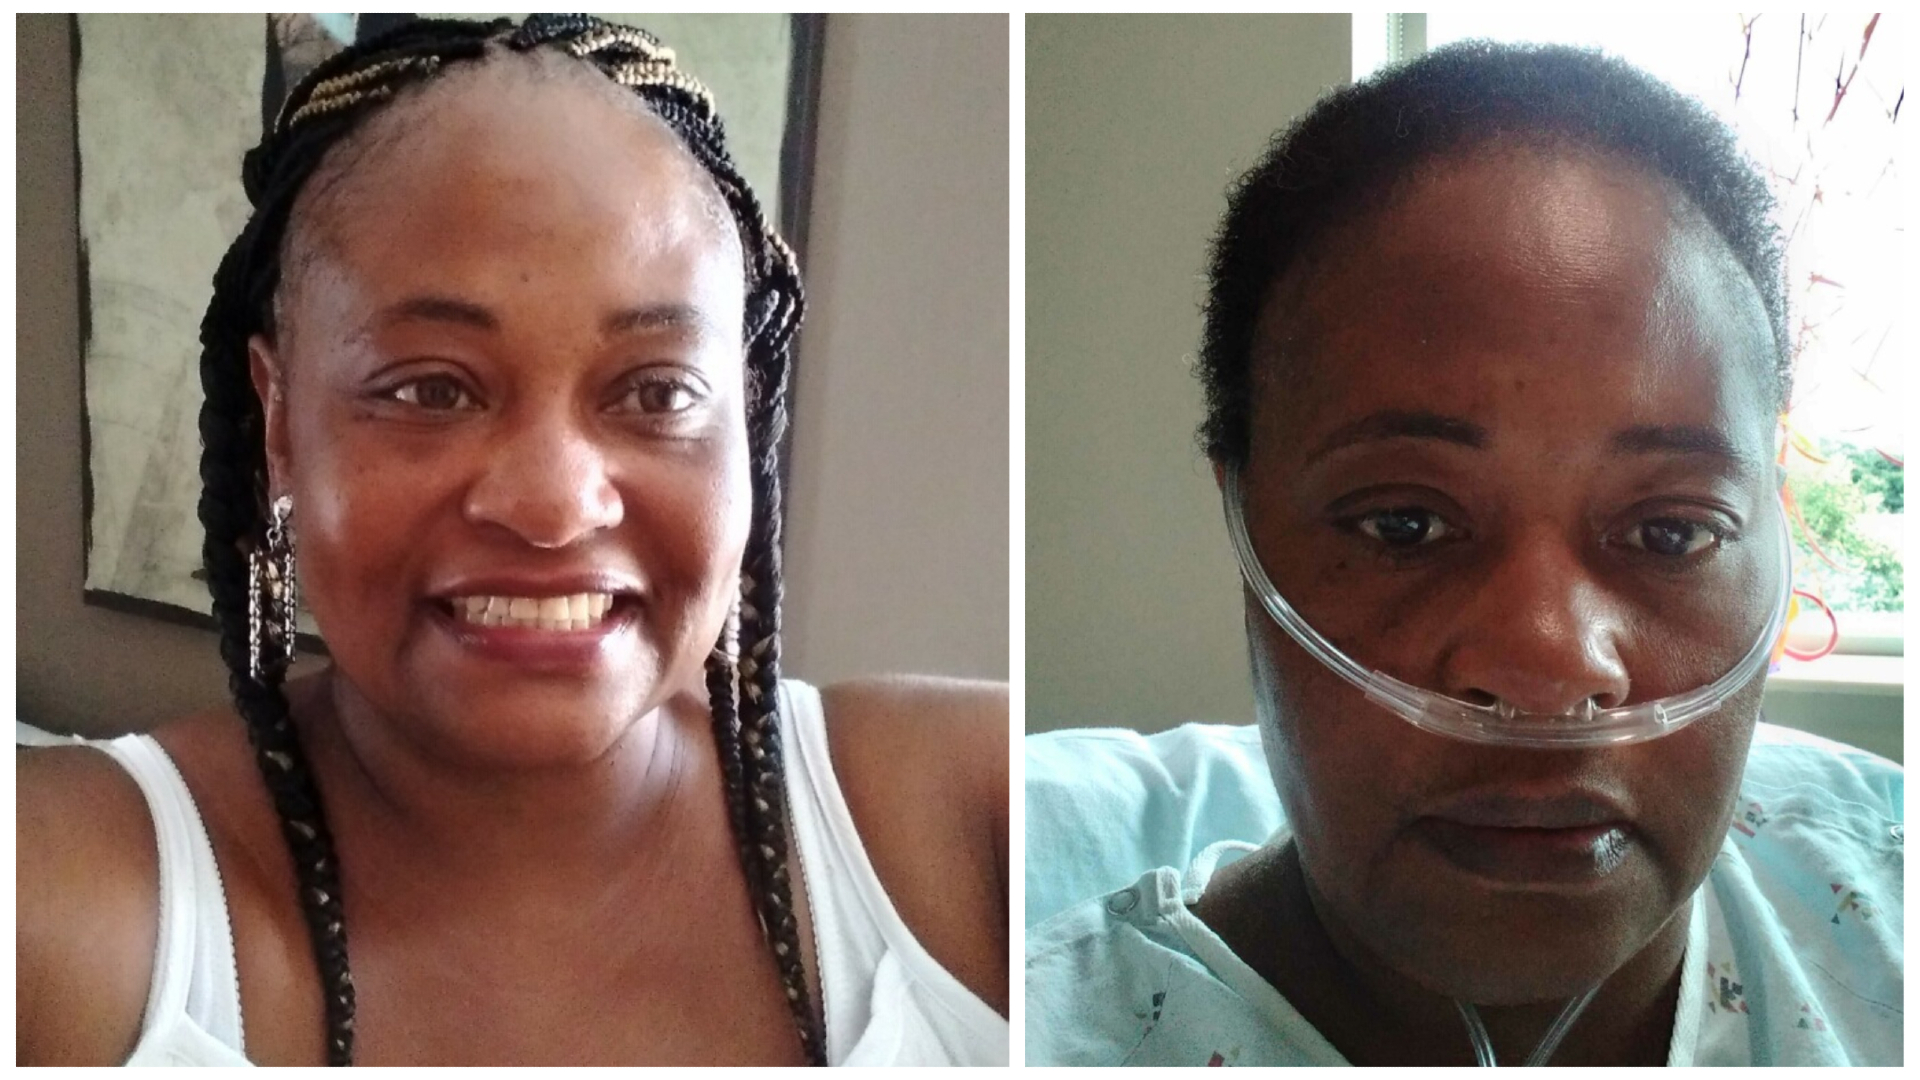 Working in a hospital and seeing the effects of COVID-19 wasn't enough to change Lateasa McLean's stance against getting vaccinated. Neither was contracting the virus herself. But one week after testing positive, she fainted and was rushed to the hospital, realizing she made a mistake.